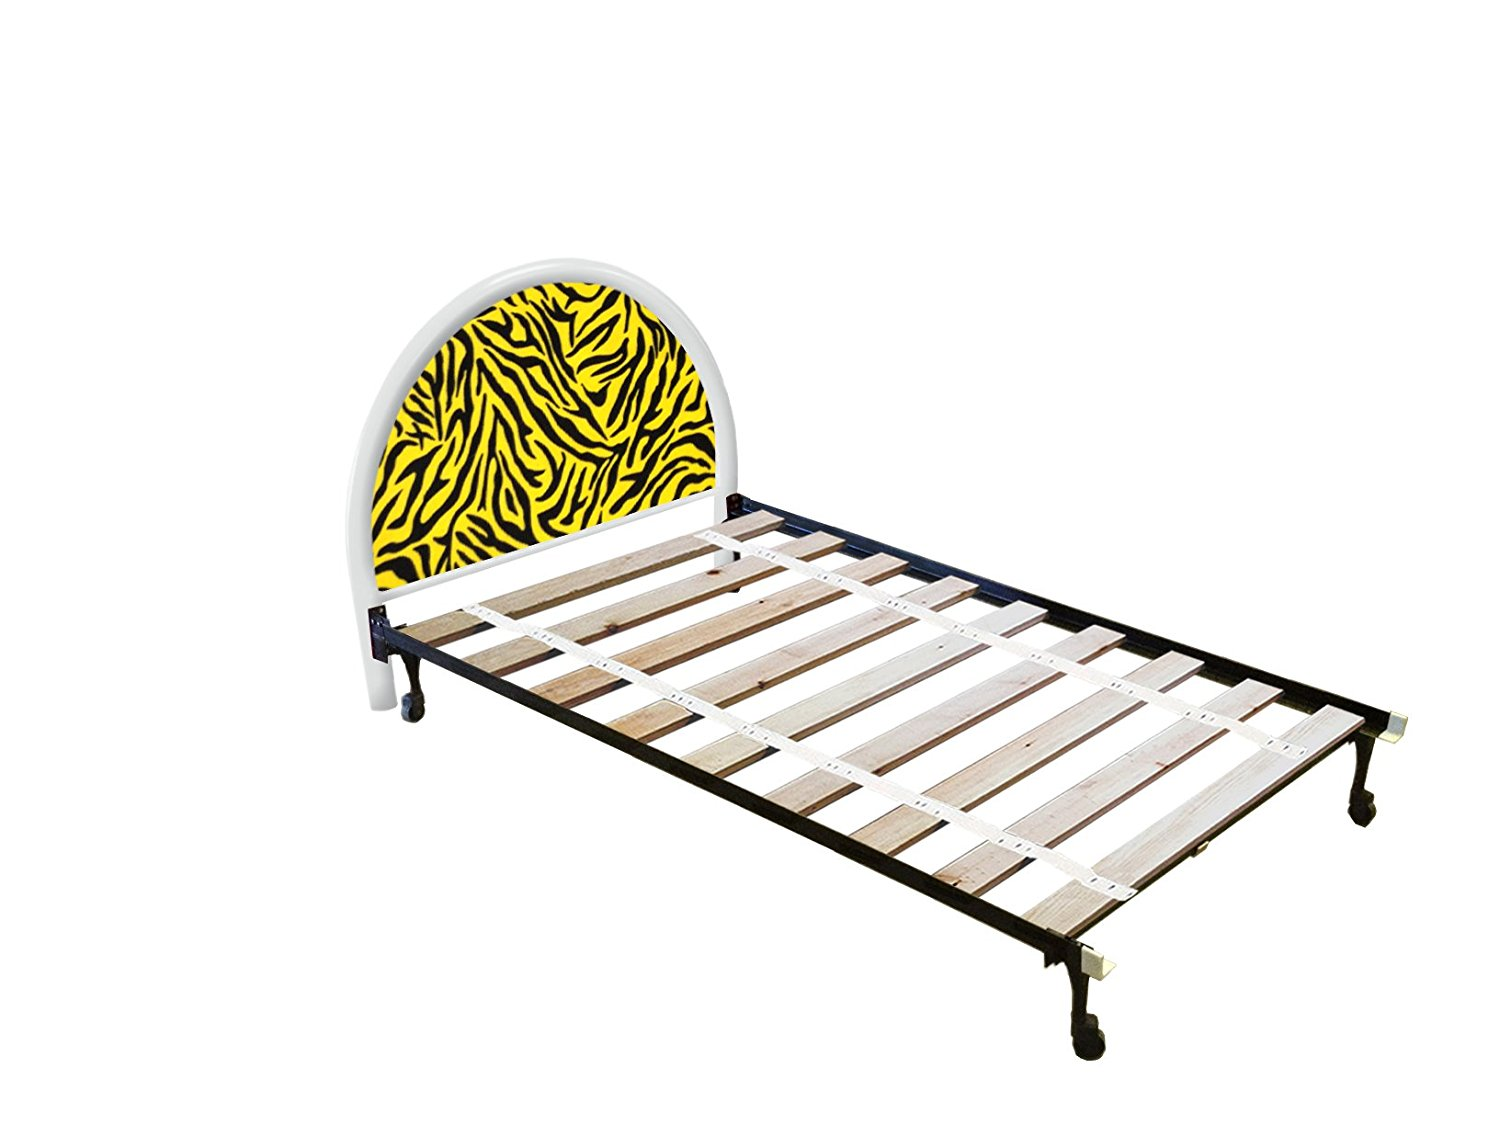 The Furniture Cove New Twin Size Custom Yellow Zebra Print Themed Bed Set! Includes Head Board, Bed Frame and Bed Slats!